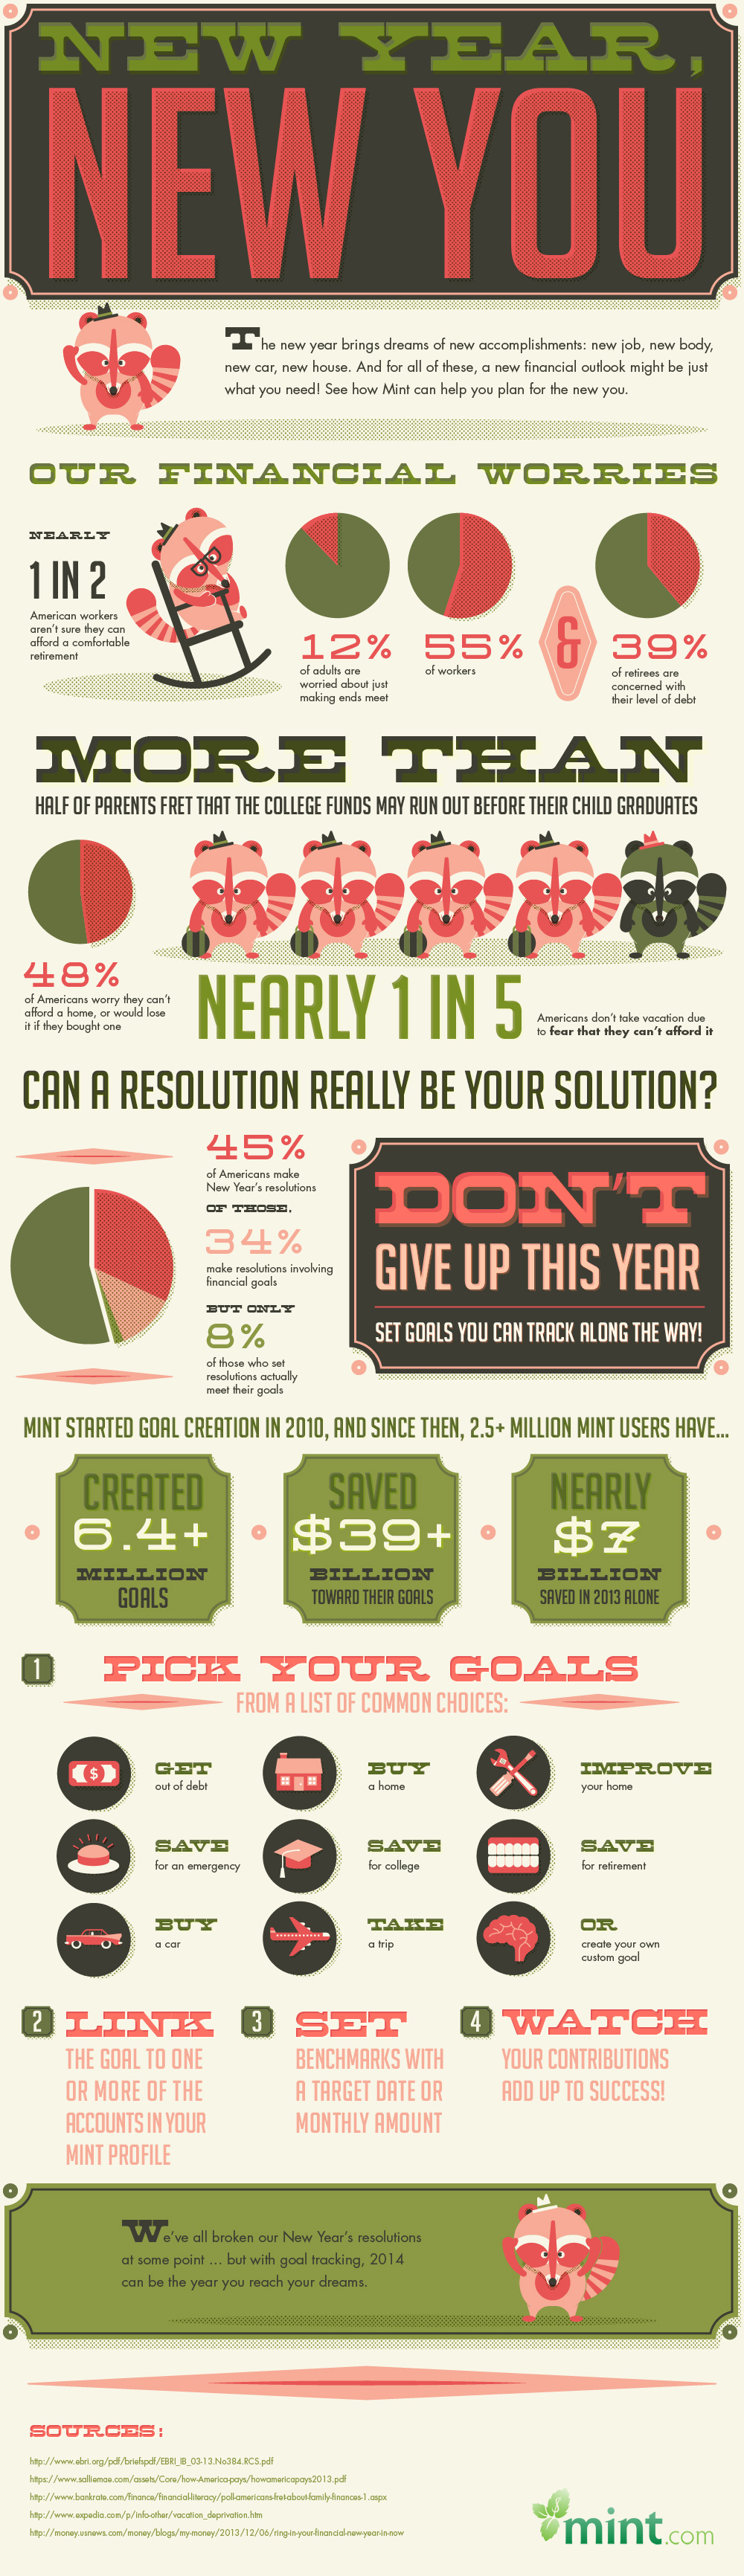 New Year, New You [Infographic]